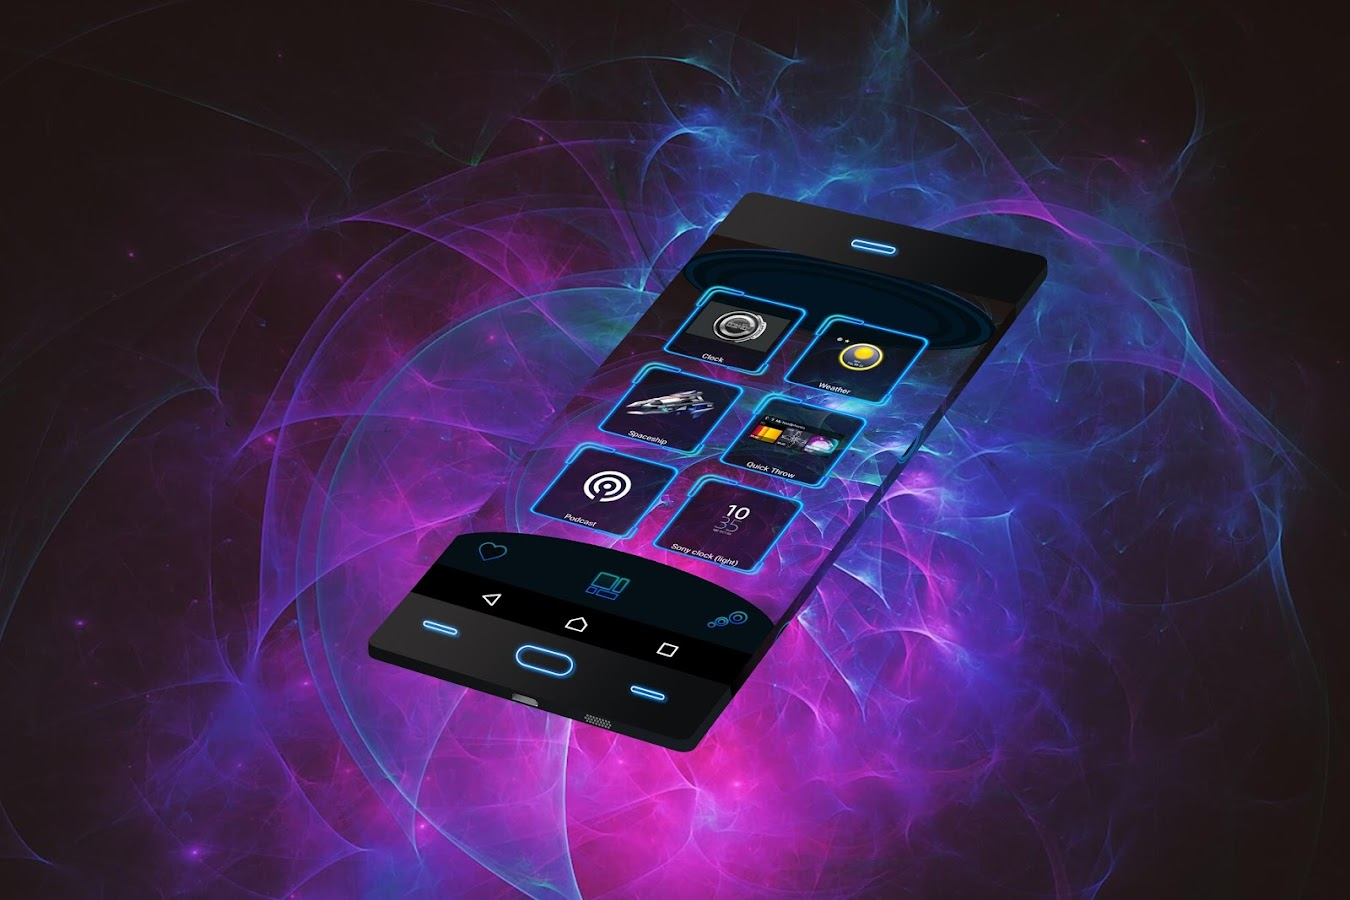 Screenshots of 3D Themes for Android for iPhone